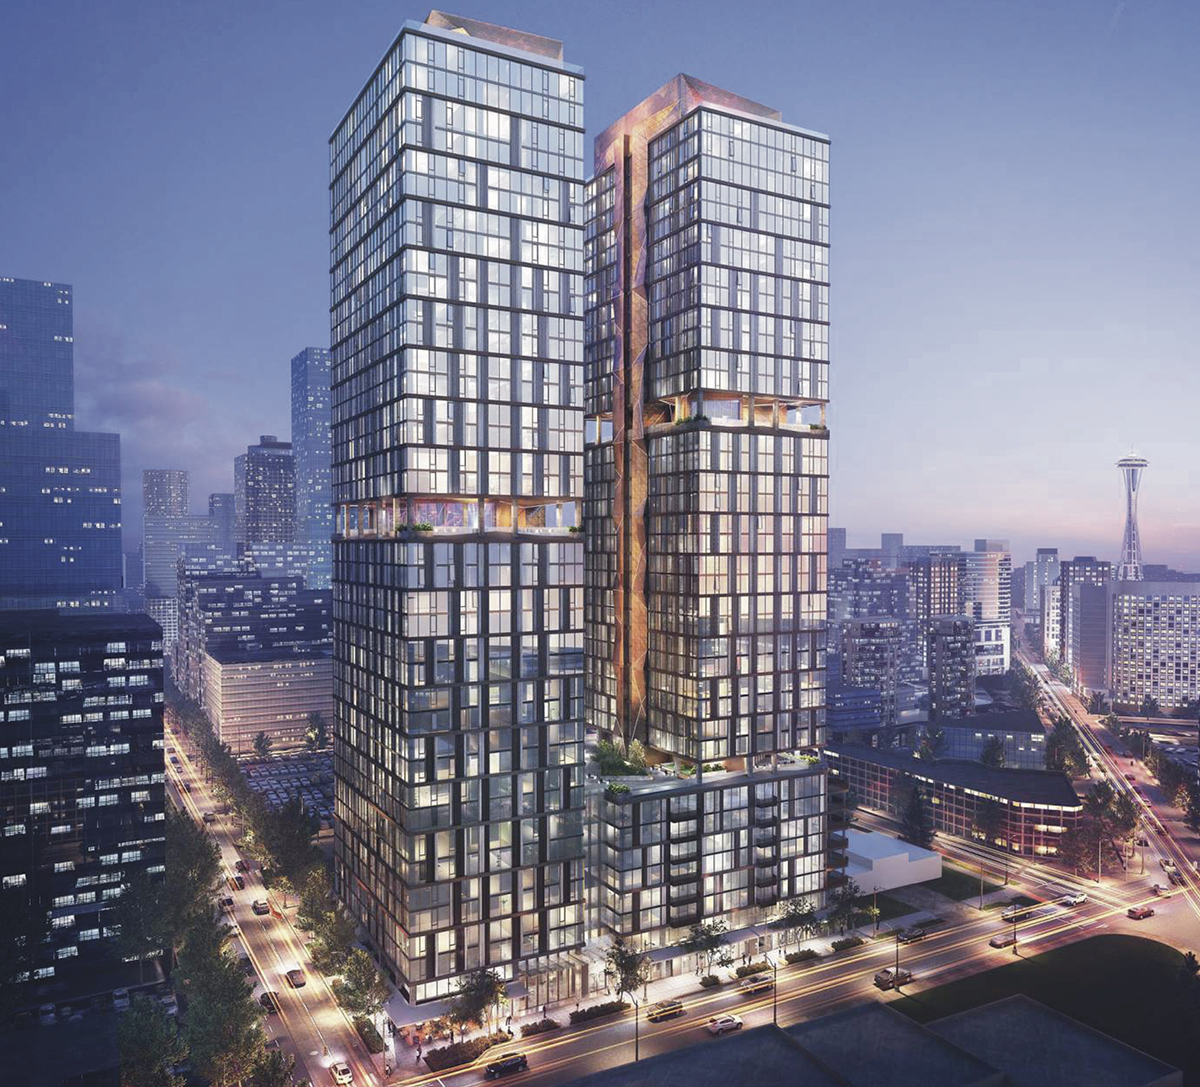 Dual 24 Story Apartment Towers Debut At 8th Spring: Denny Triangle High-Rise Project Sells